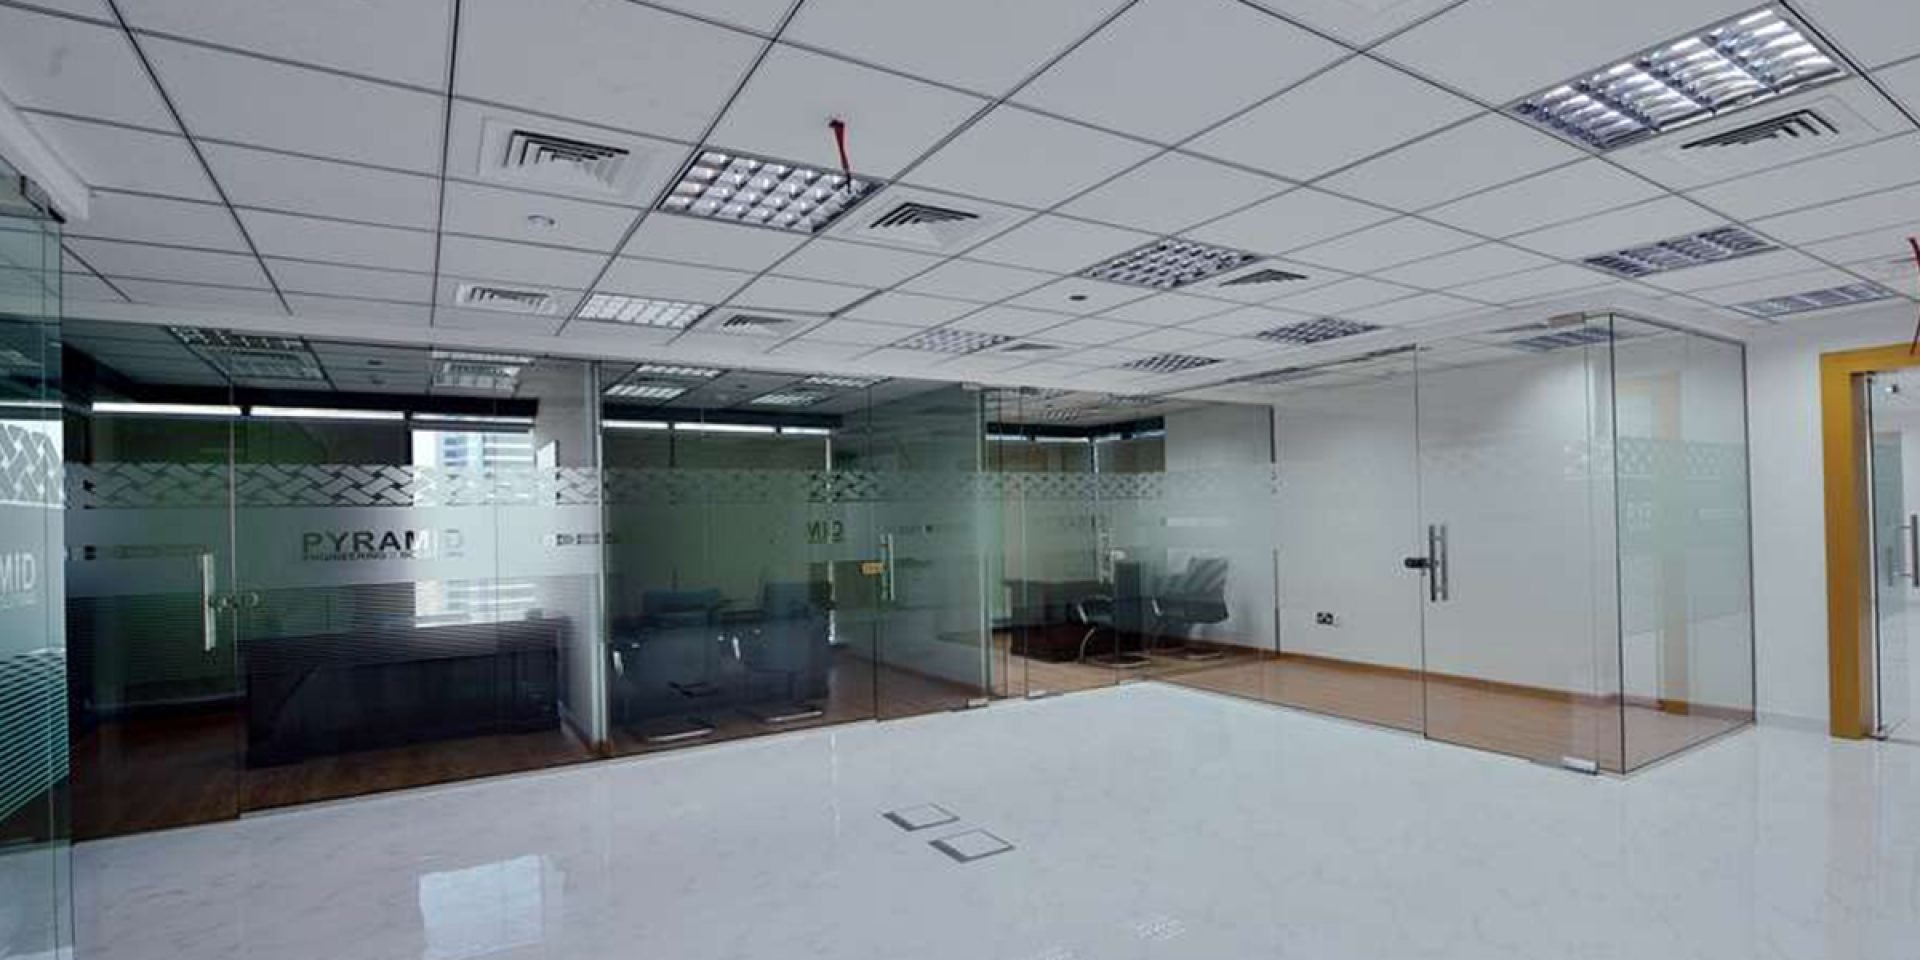 More about the Partitions and Renovation